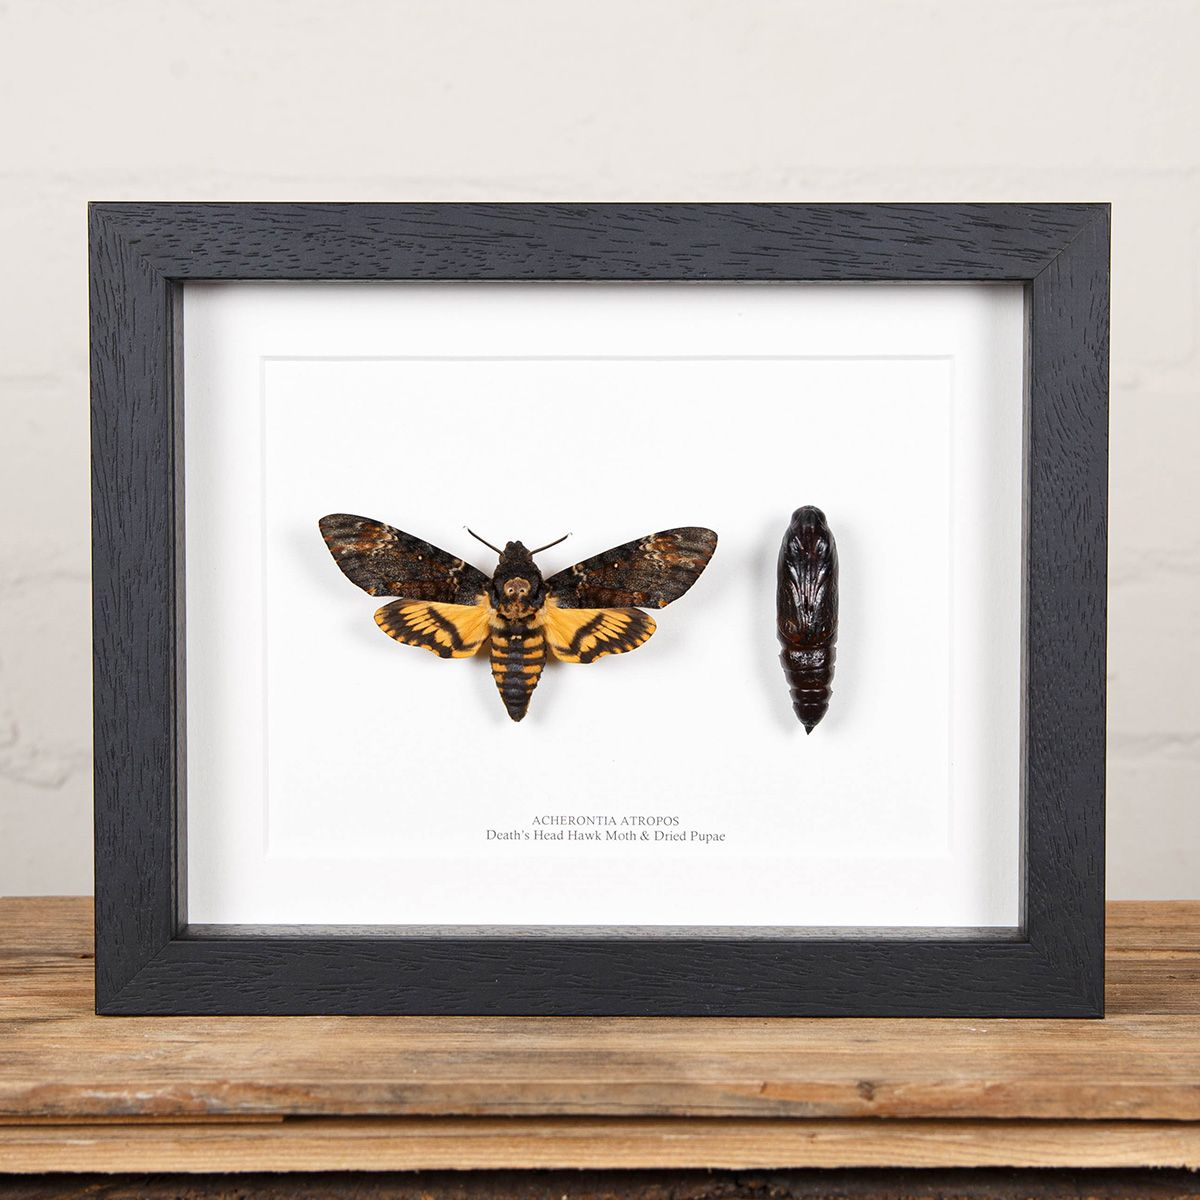 Pupae and Deaths Head Hawk Moth in Box Frame (Acherontia atropos)